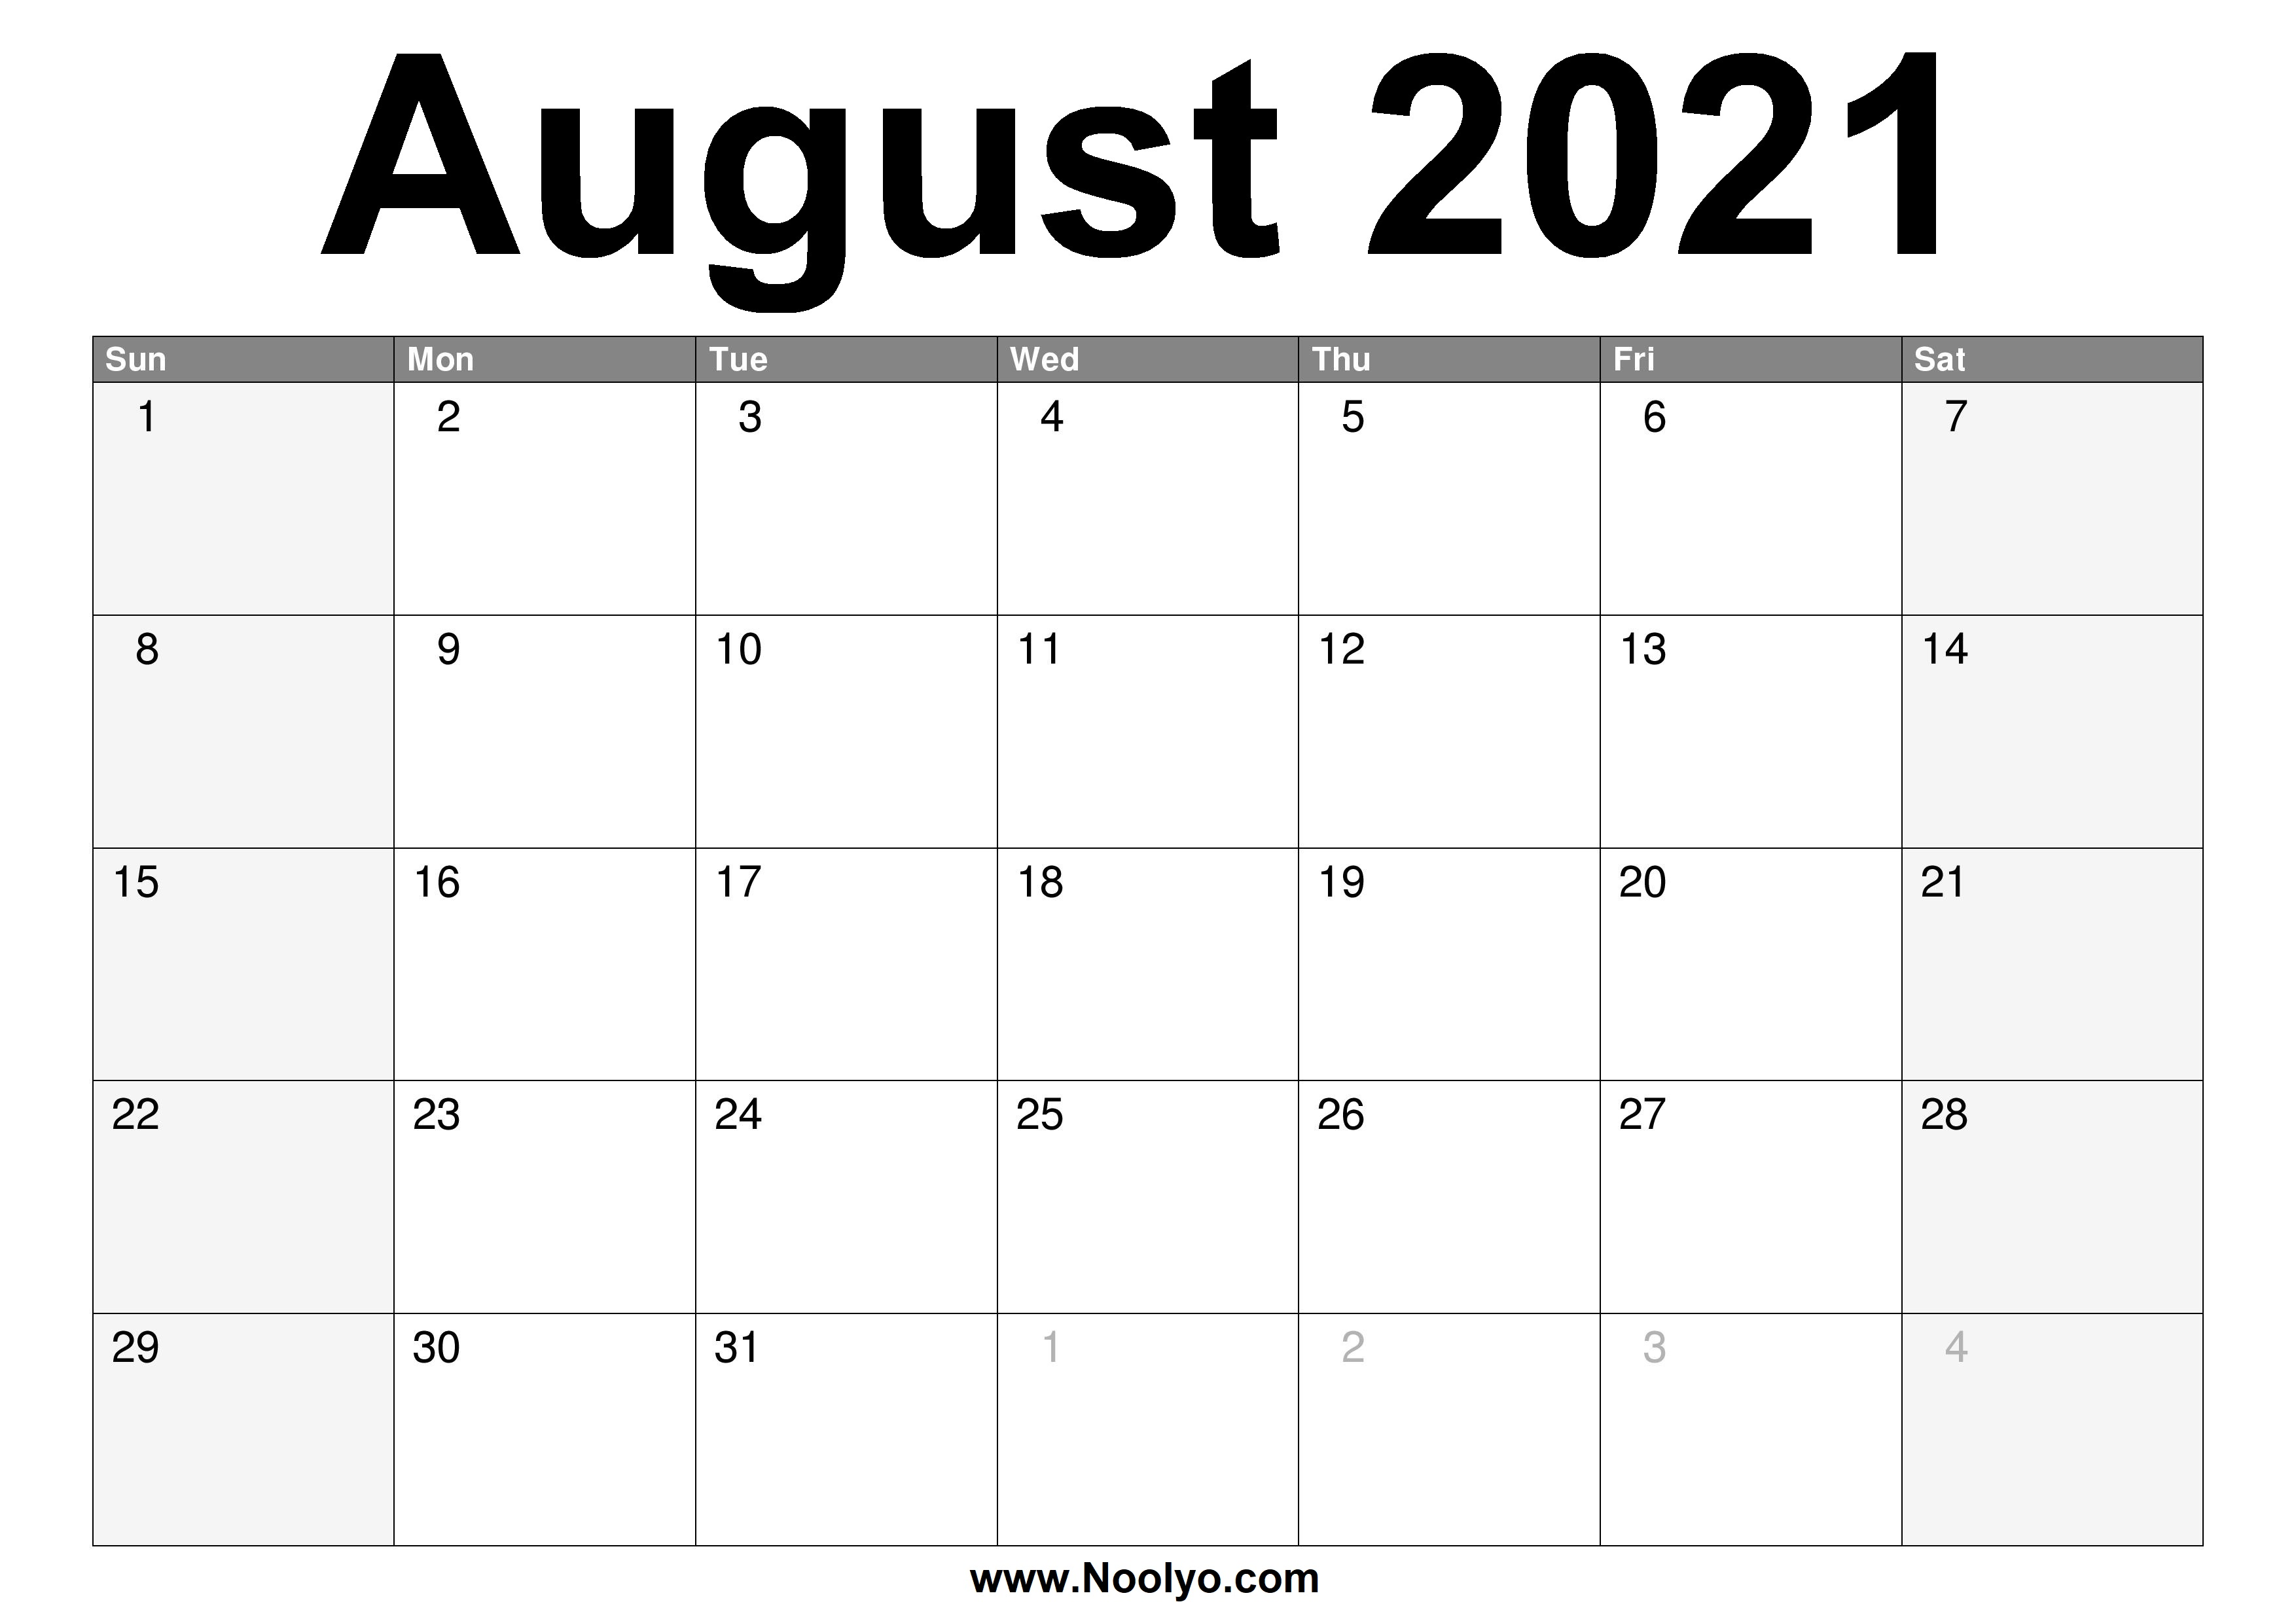 August 2021 Calendar Printable – Free Download – Noolyo.com